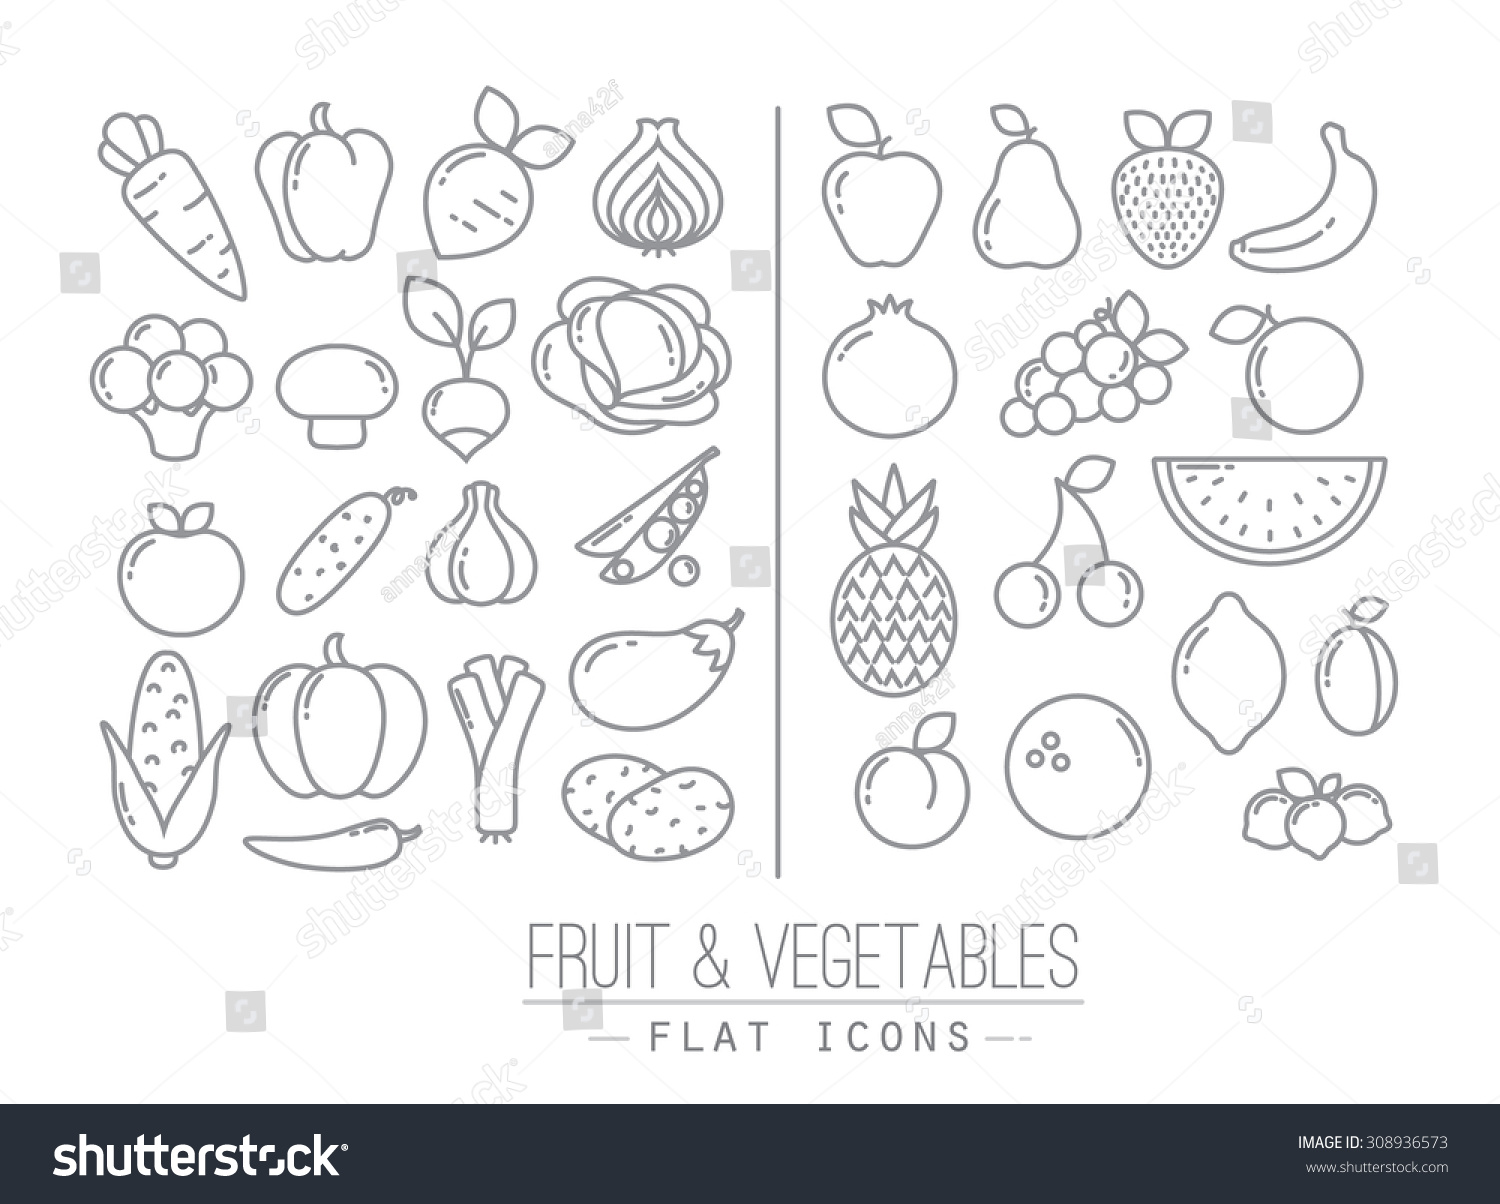 Set of flat fruits and vegetables icons drawing with black lines on white background #308936573